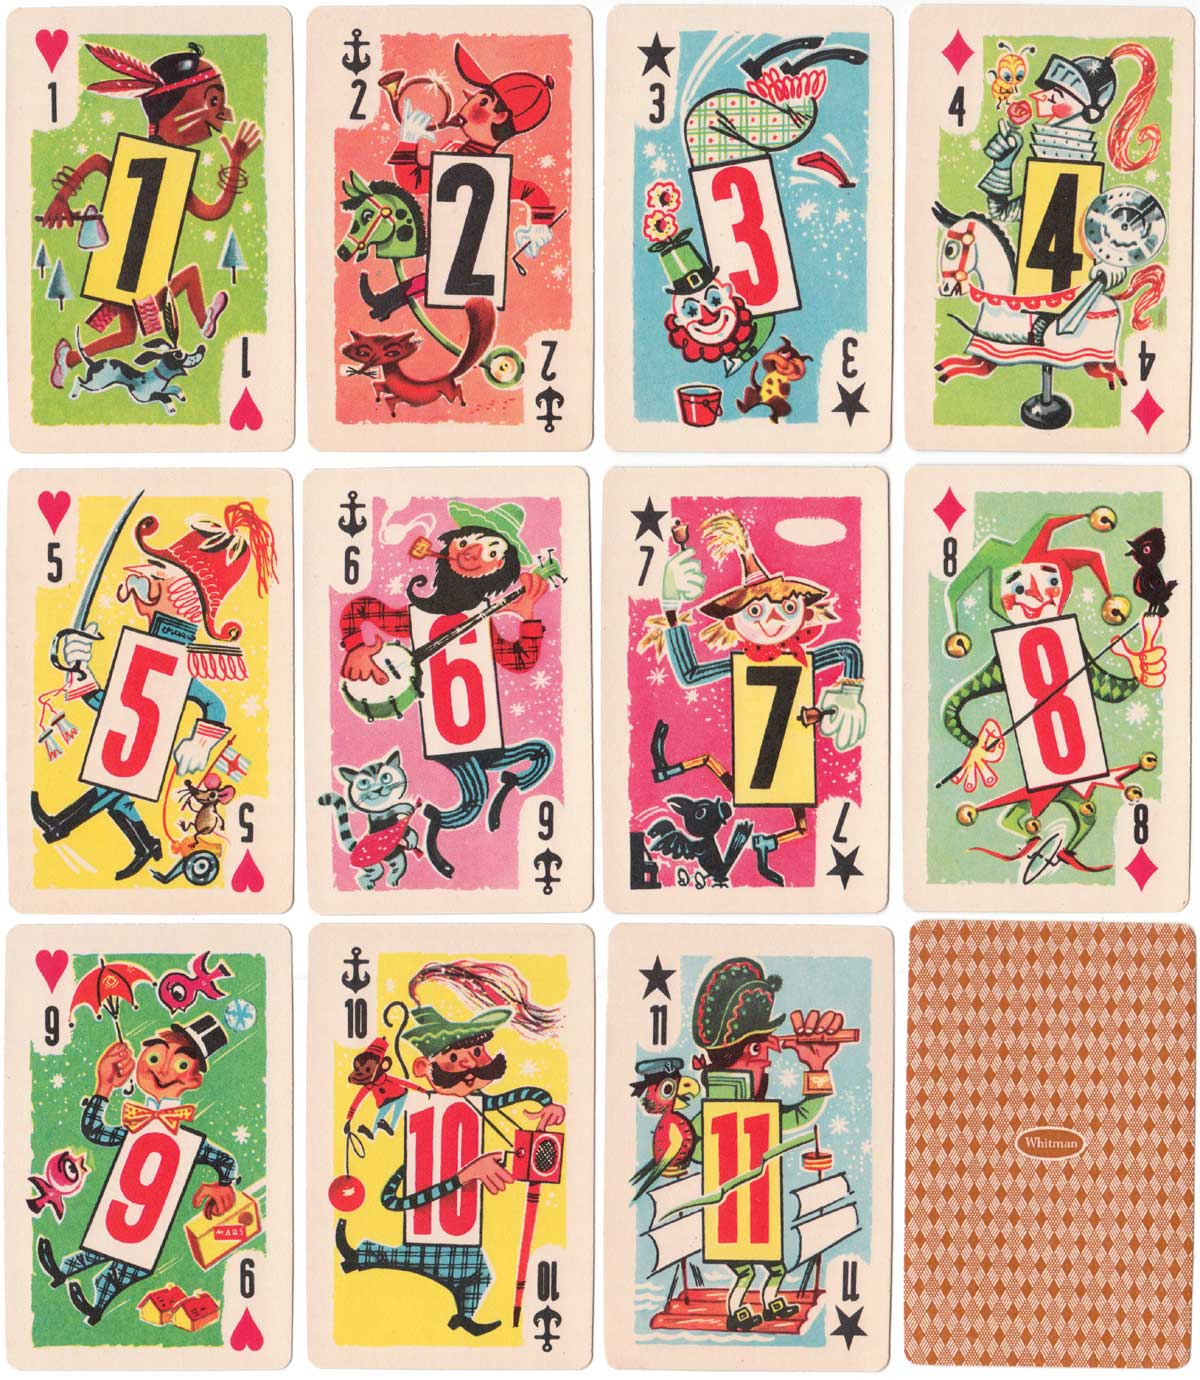 Crazy Eights by Whitman Publishing Co., 1951